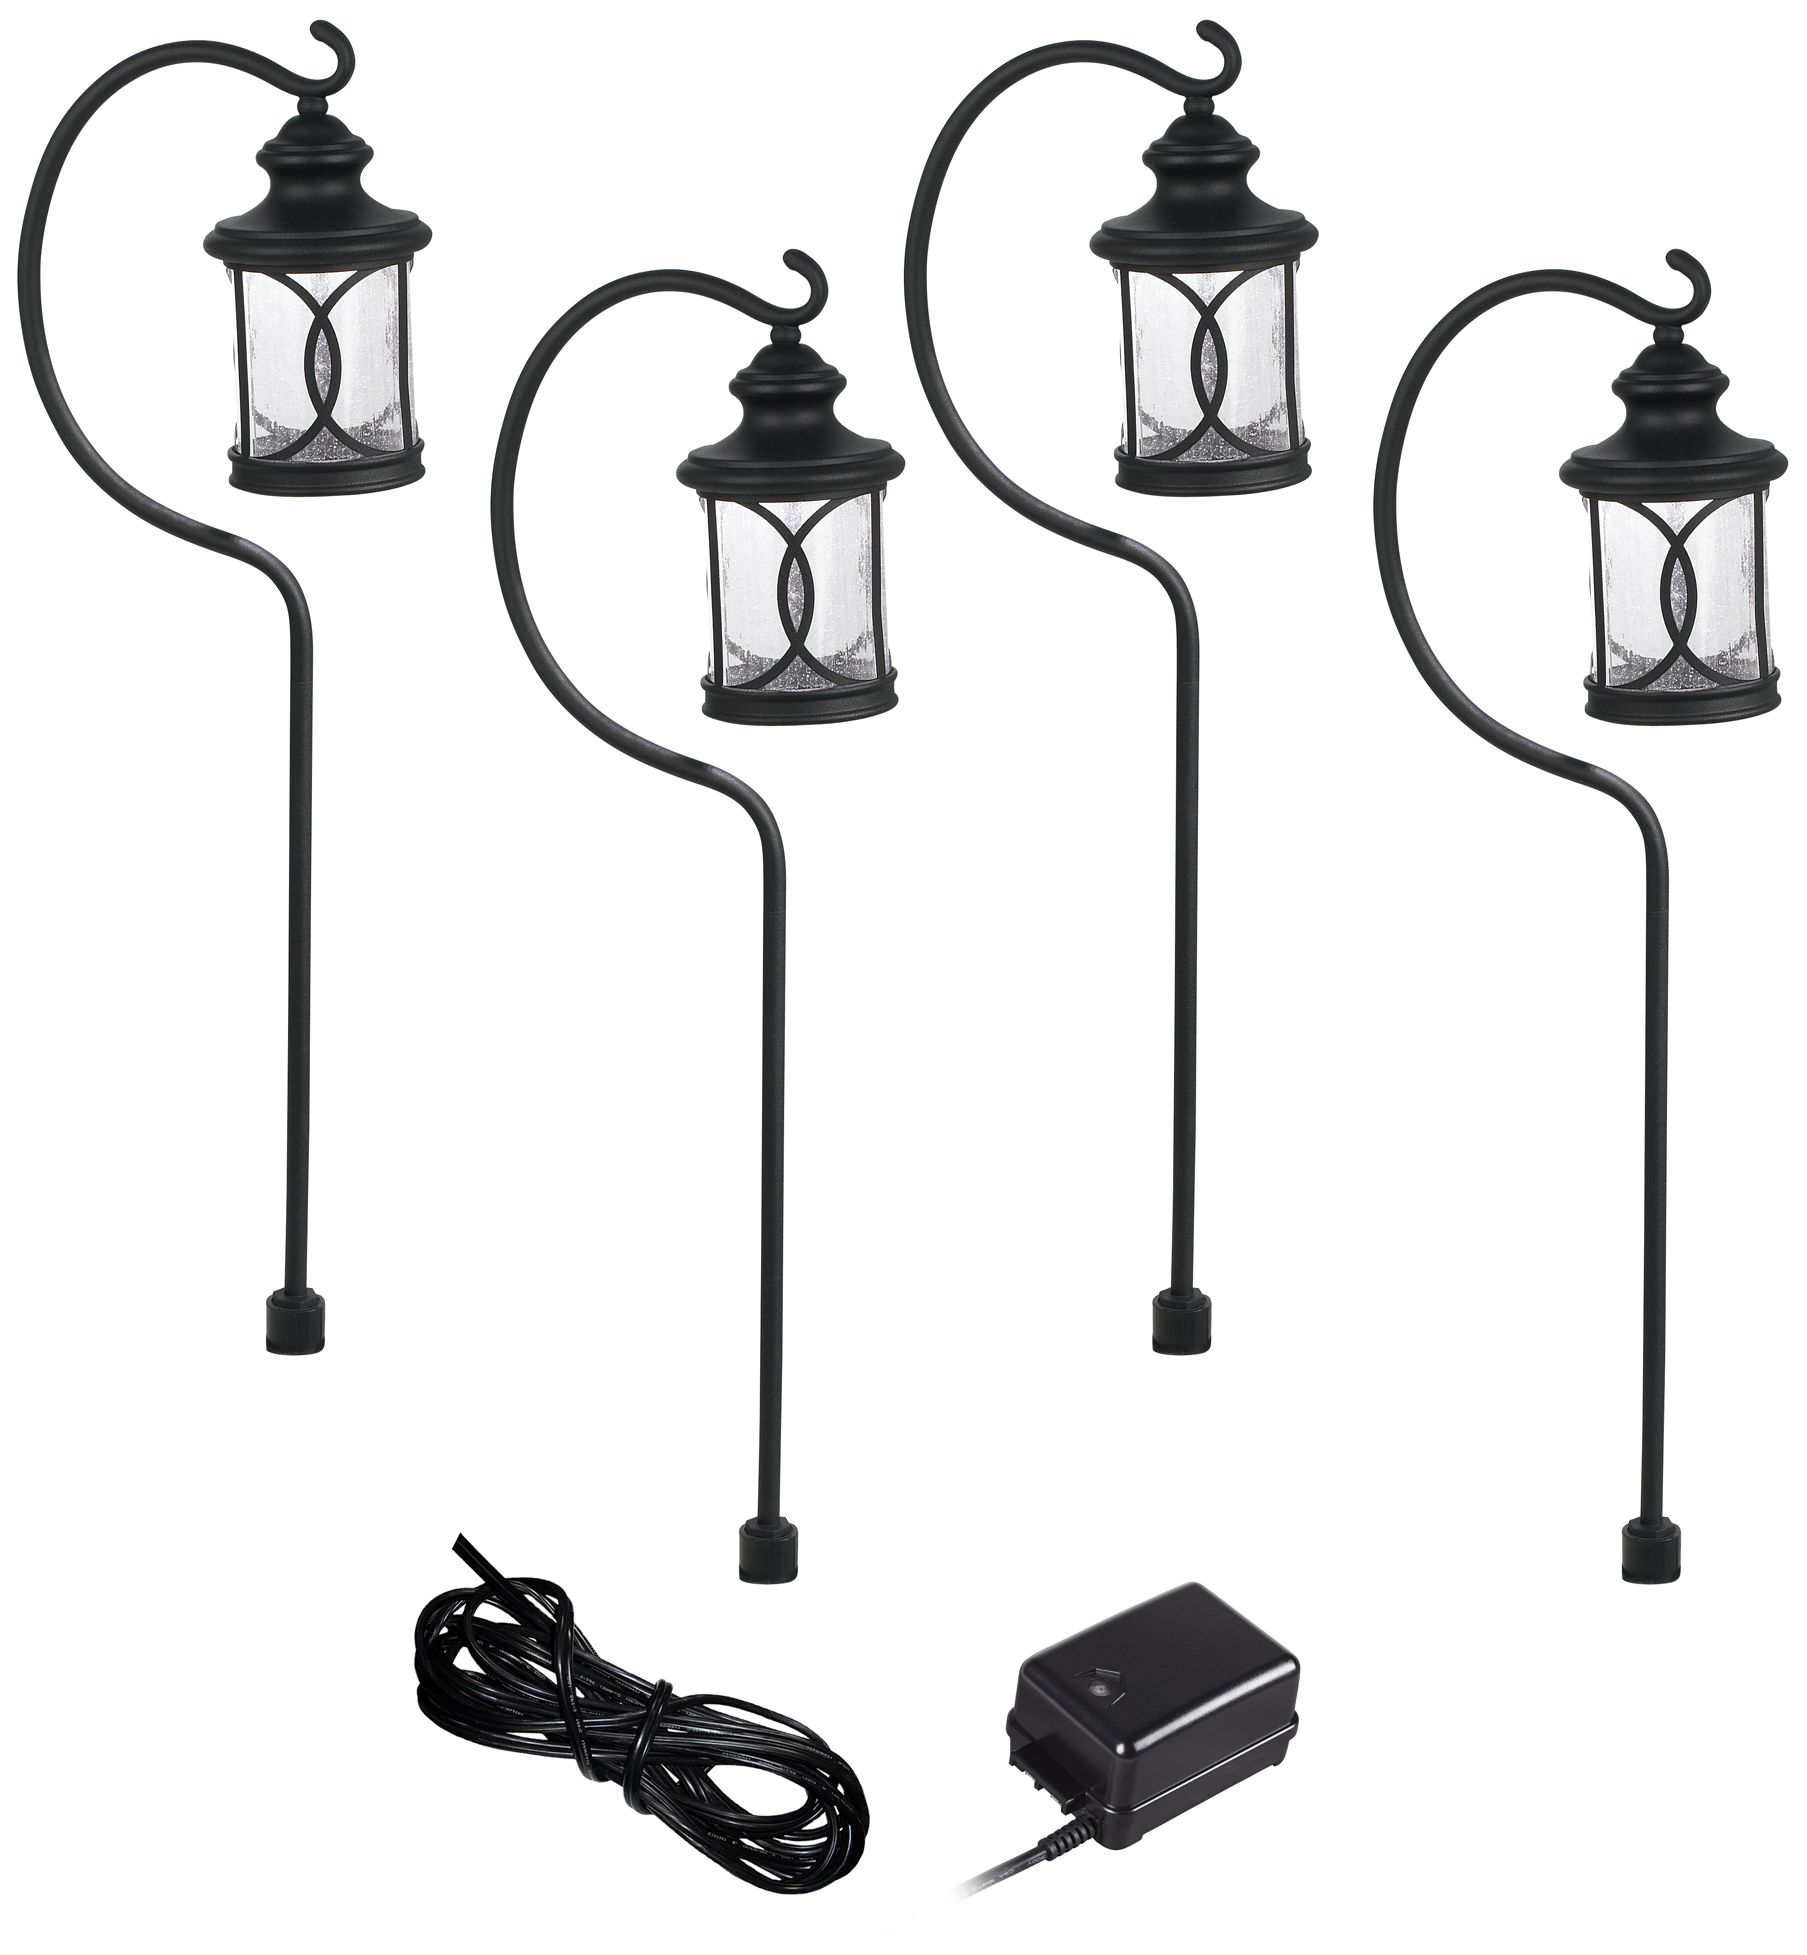 Capistrano Black 4-Path Light LED Landscape Lighting Kit  sc 1 st  L&s Plus & Capistrano Black 4-Path Light LED Landscape Lighting Kit - #2N754 ...